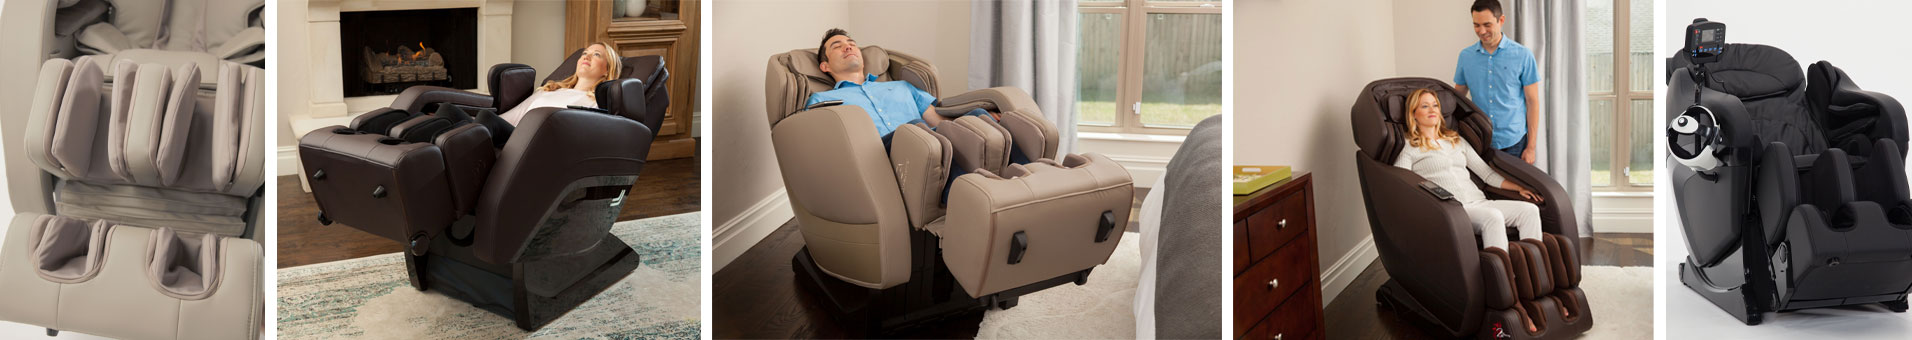 Full Body Massage Chairs | The Recreational Warehouse